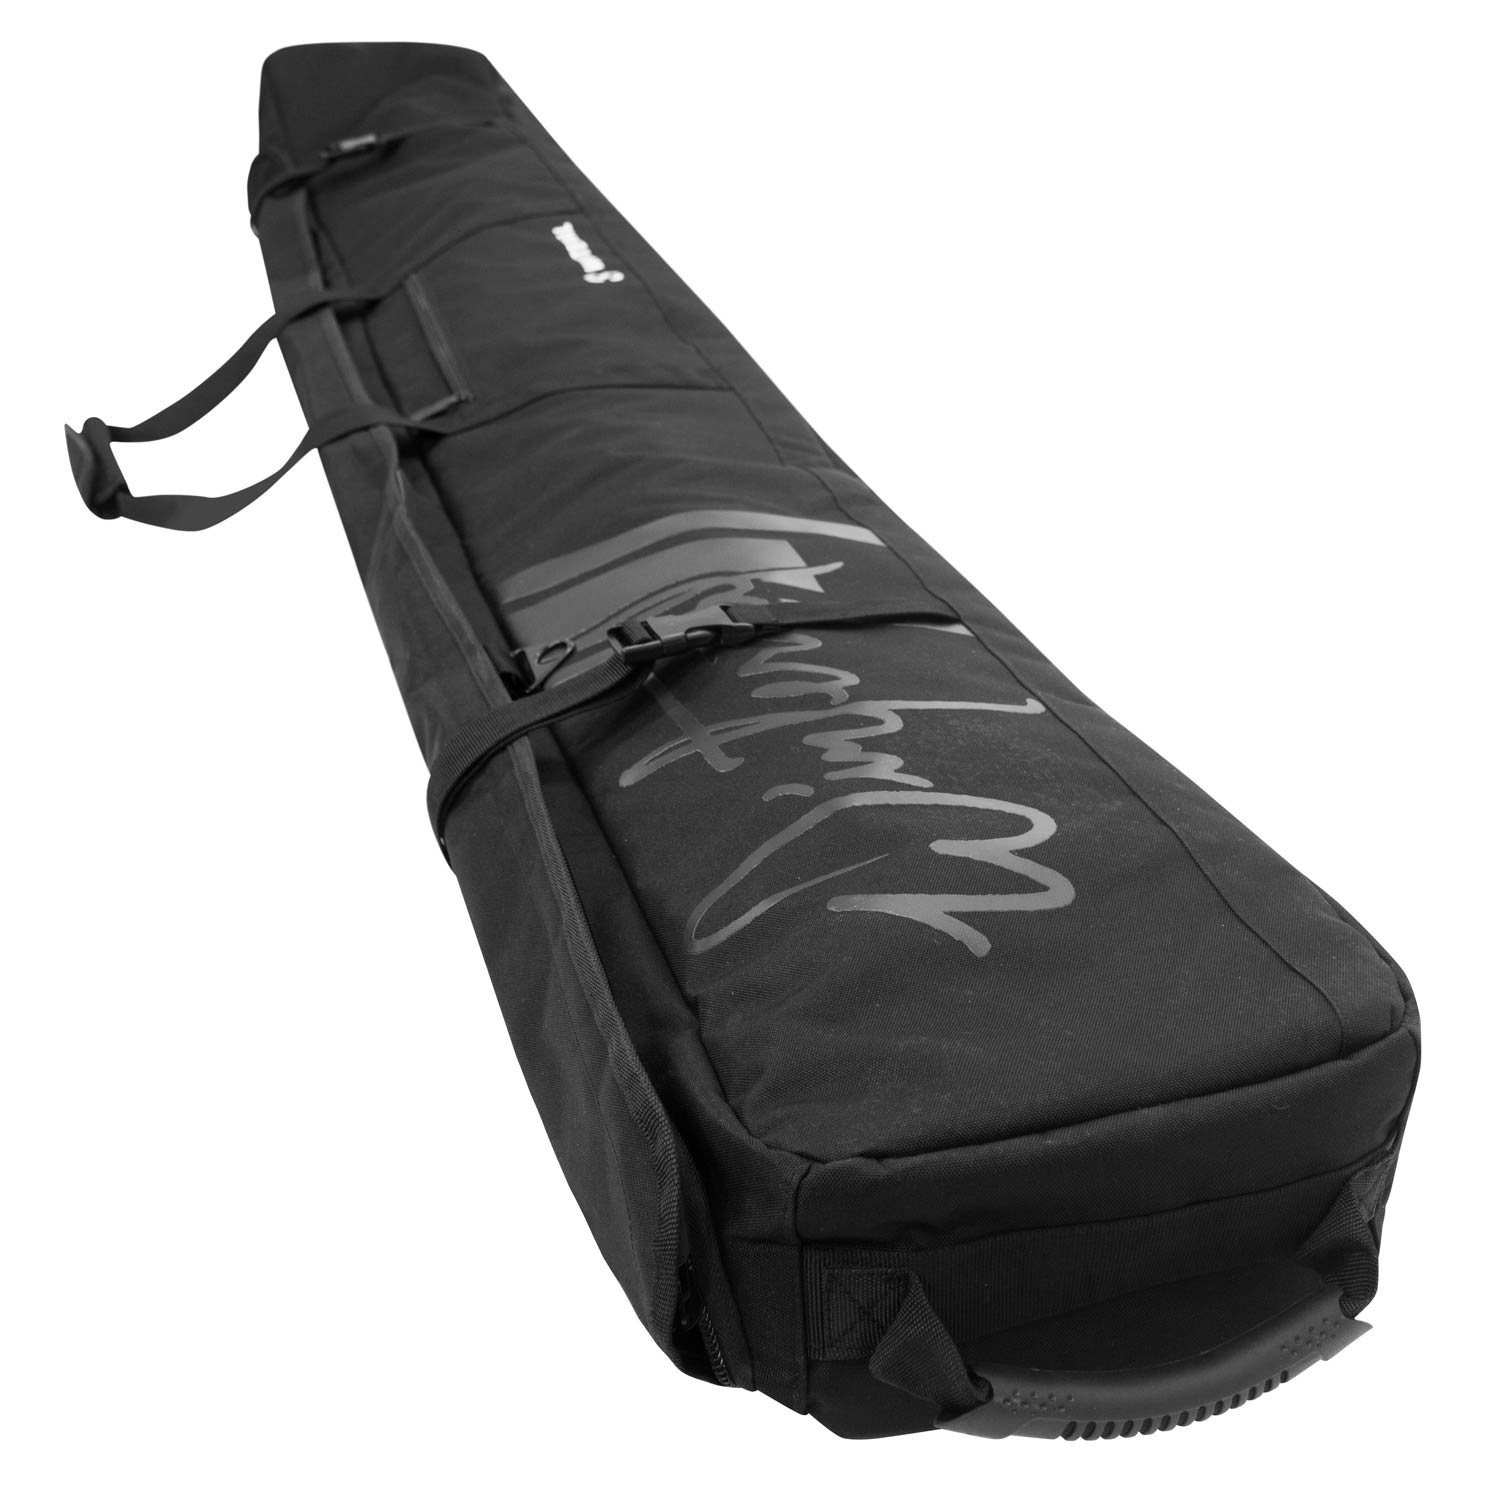 2018 Winterial Rolling Ski Bag, Travel, Winter Travel, Wheels, Protect Your Skis by Winterial (Image #5)